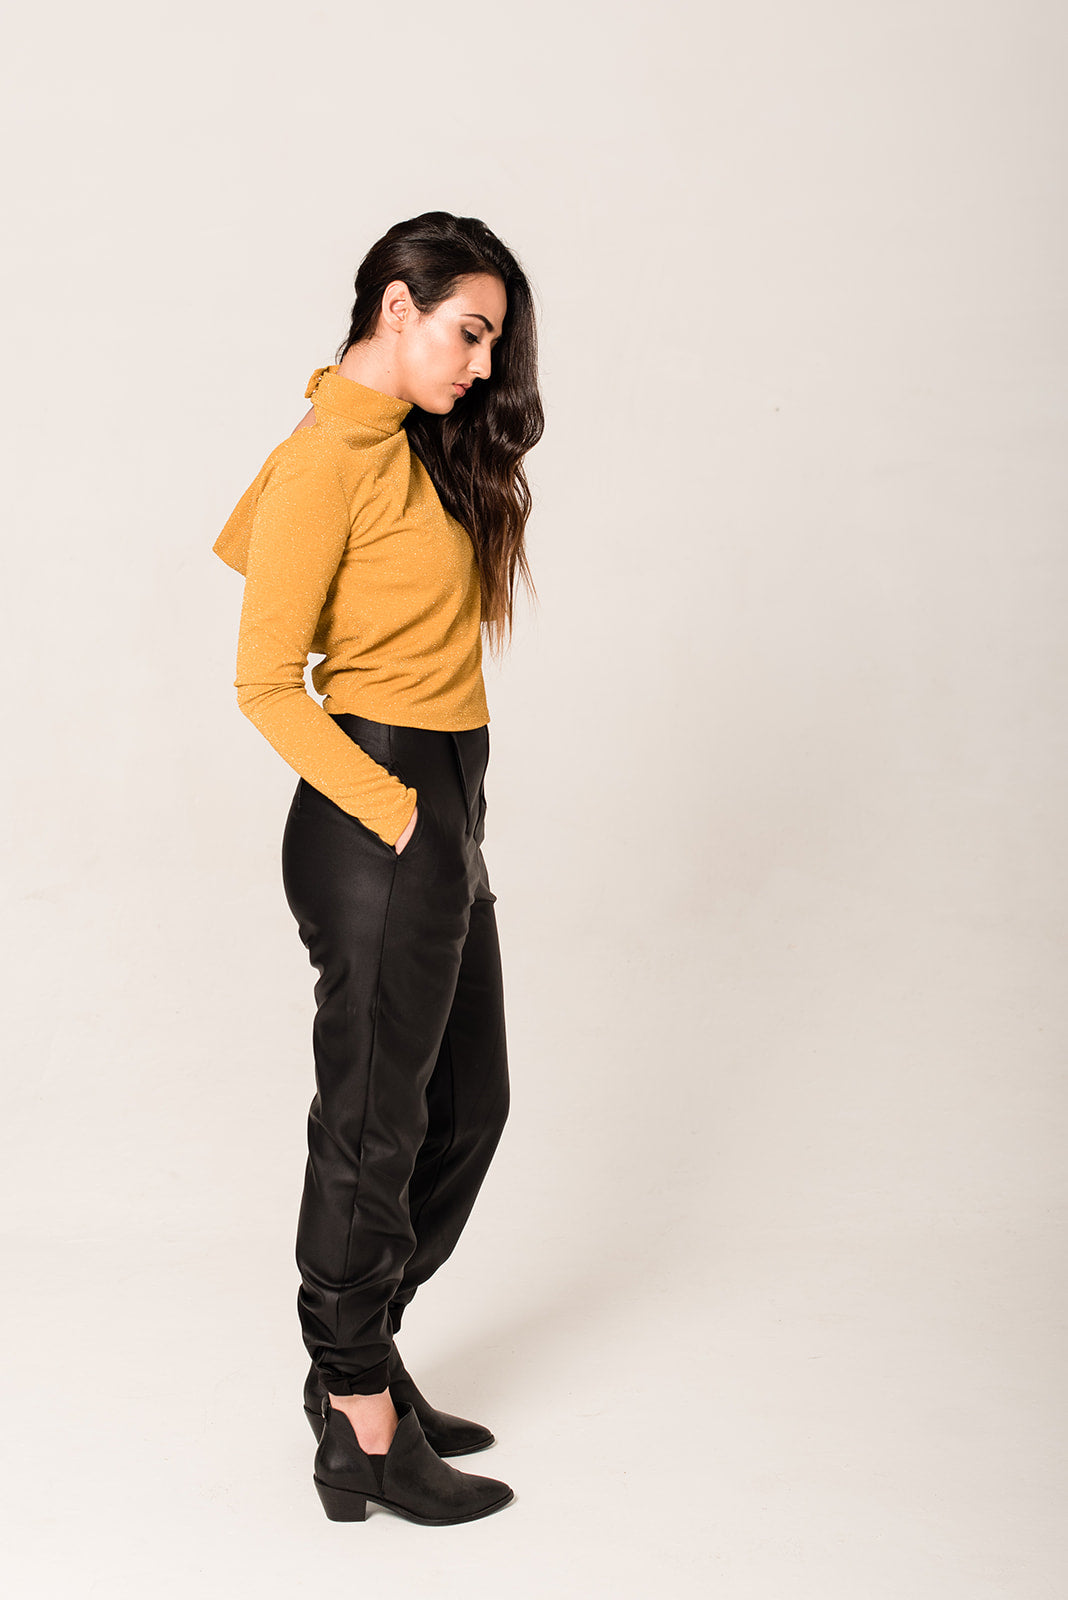 ITEM #17. The Mustard Cowl Back Top